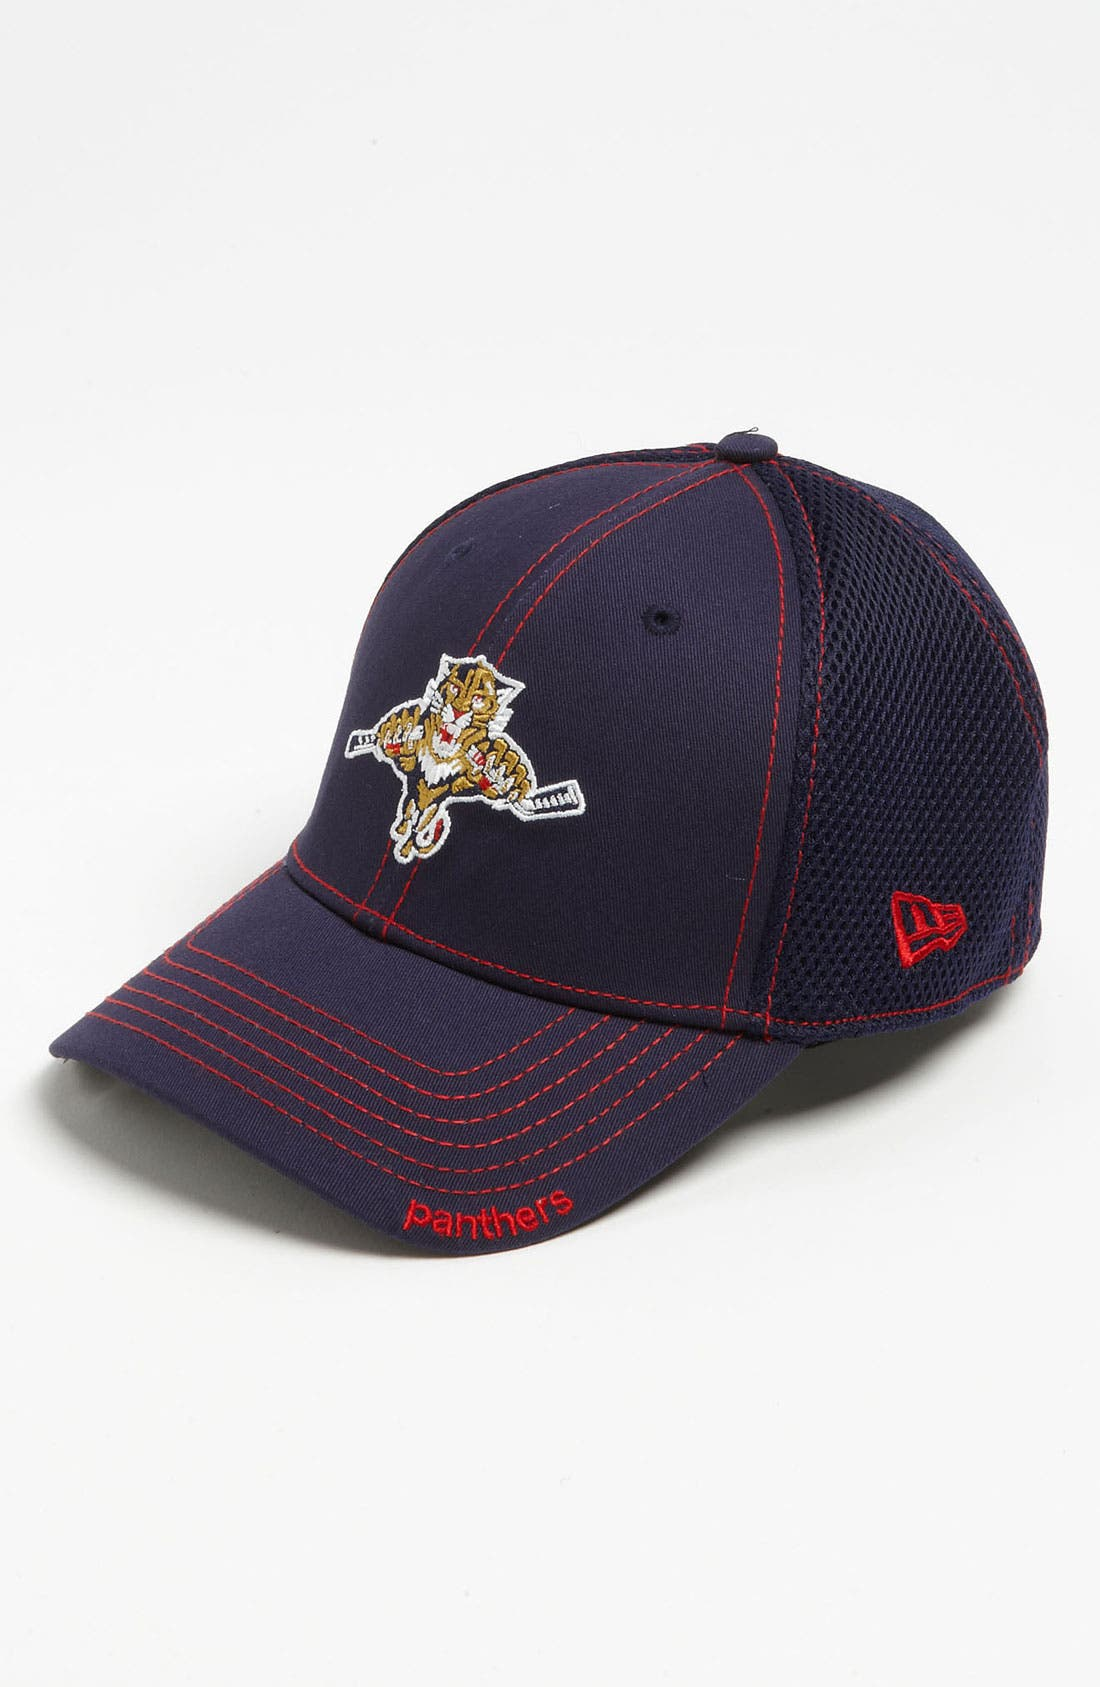 Alternate Image 1 Selected - New Era Cap 'Neo - Florida Panthers' Baseball Cap